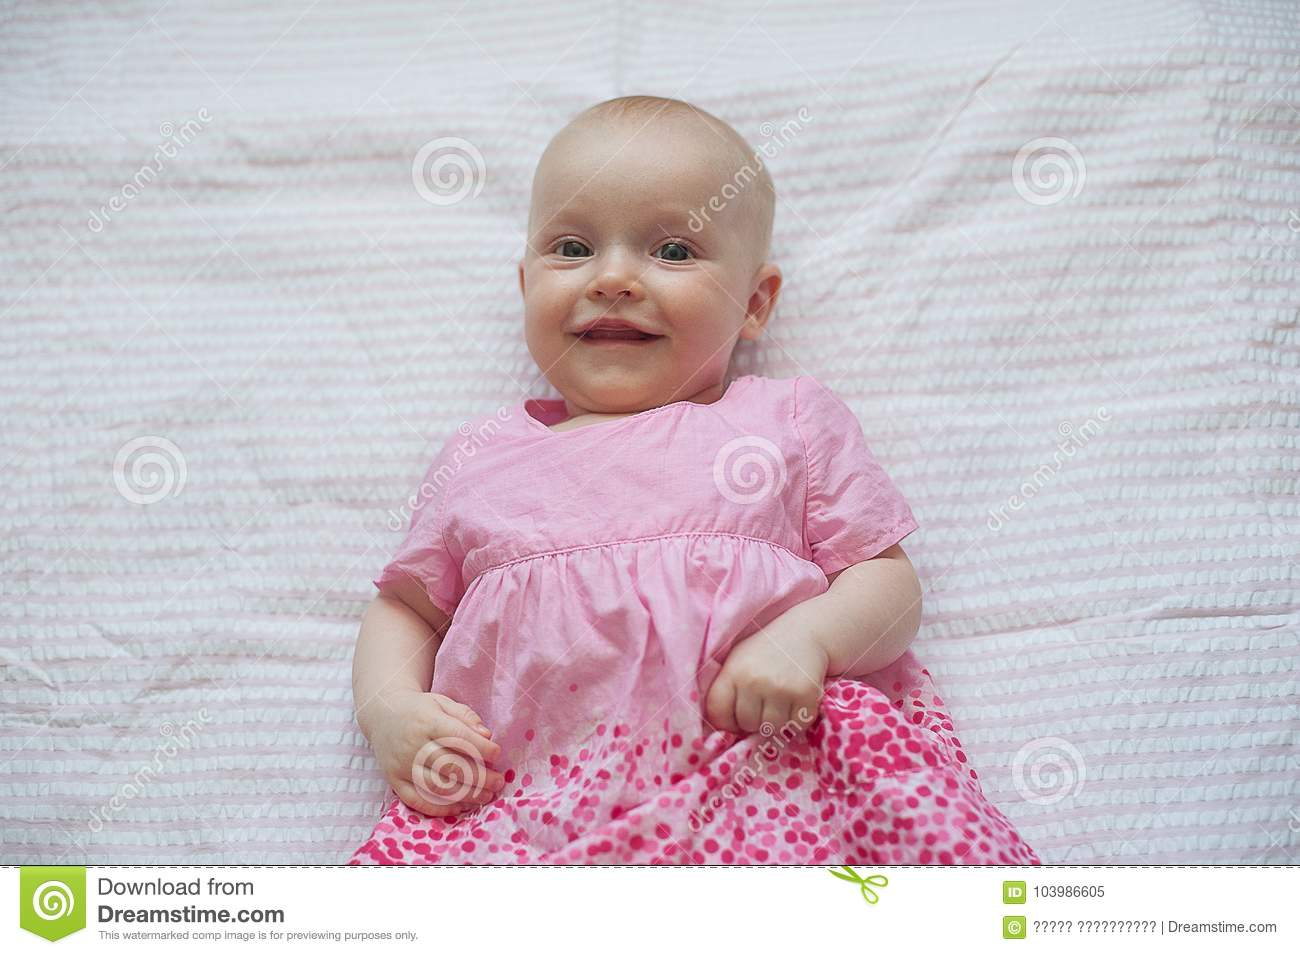 d44aa47d2 Cute Baby Girl In Pink Dress Lies On White Backgroun. Close-up ...